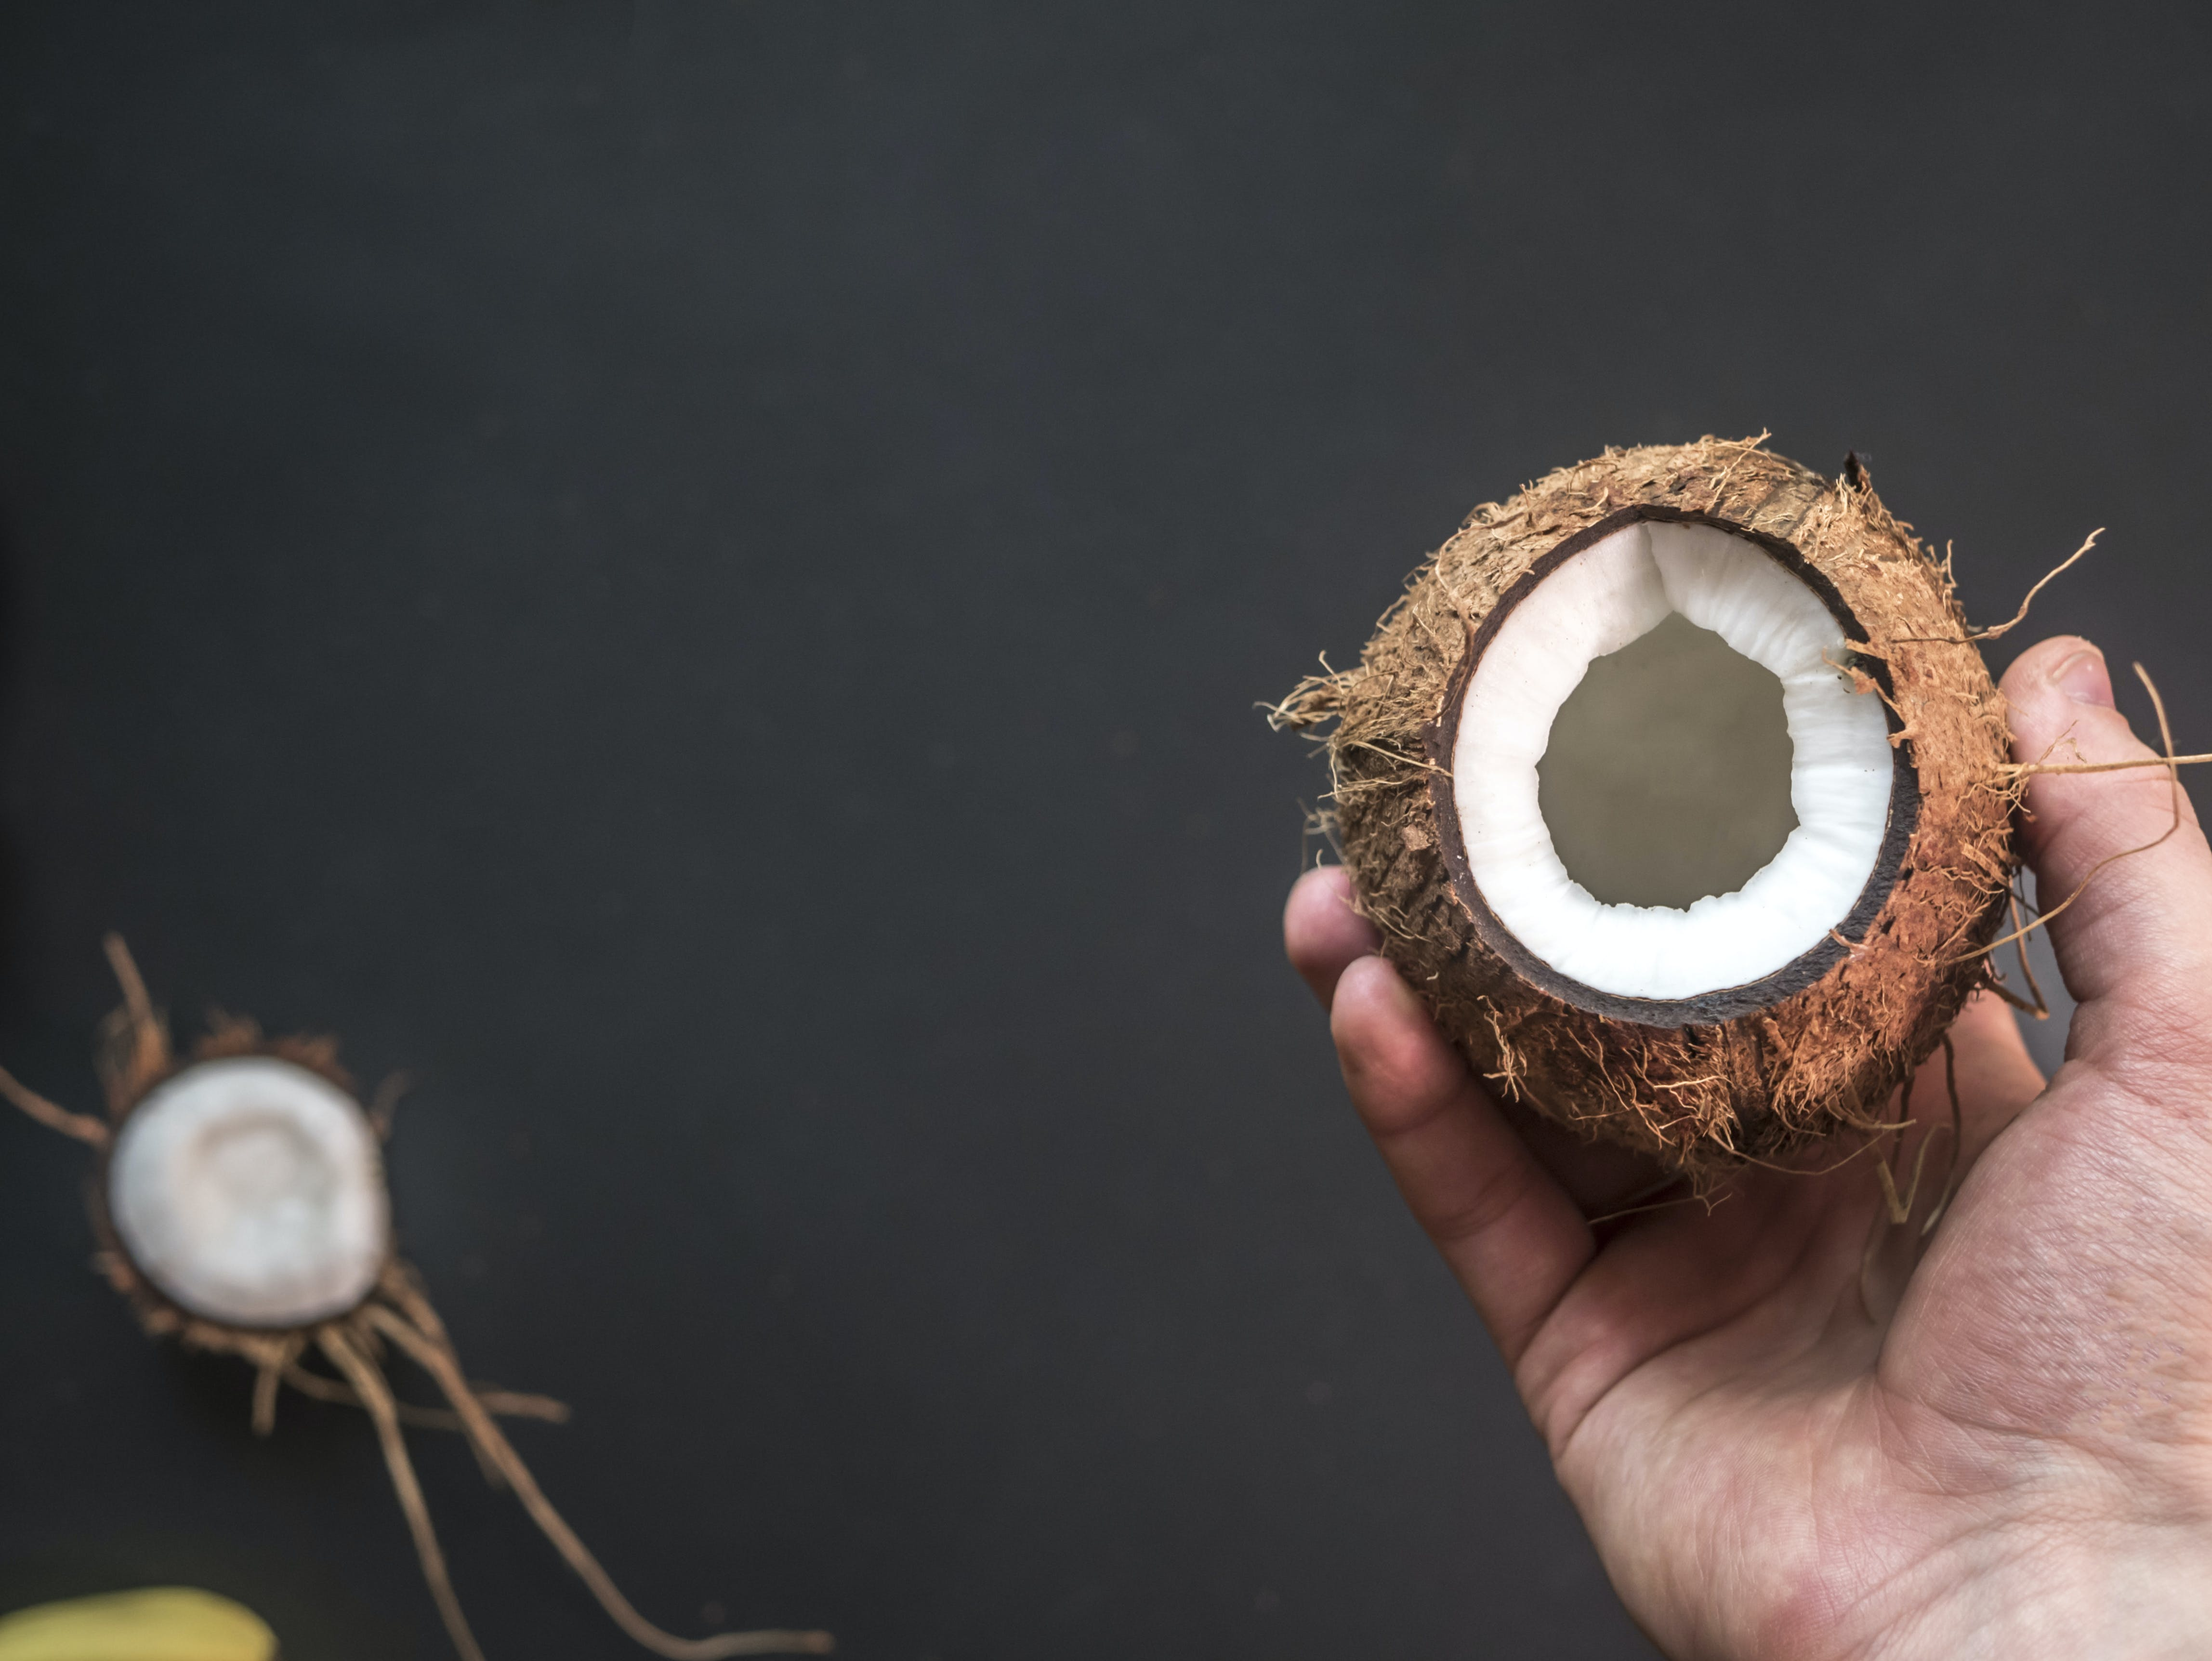 Person Holding Opened Coconut